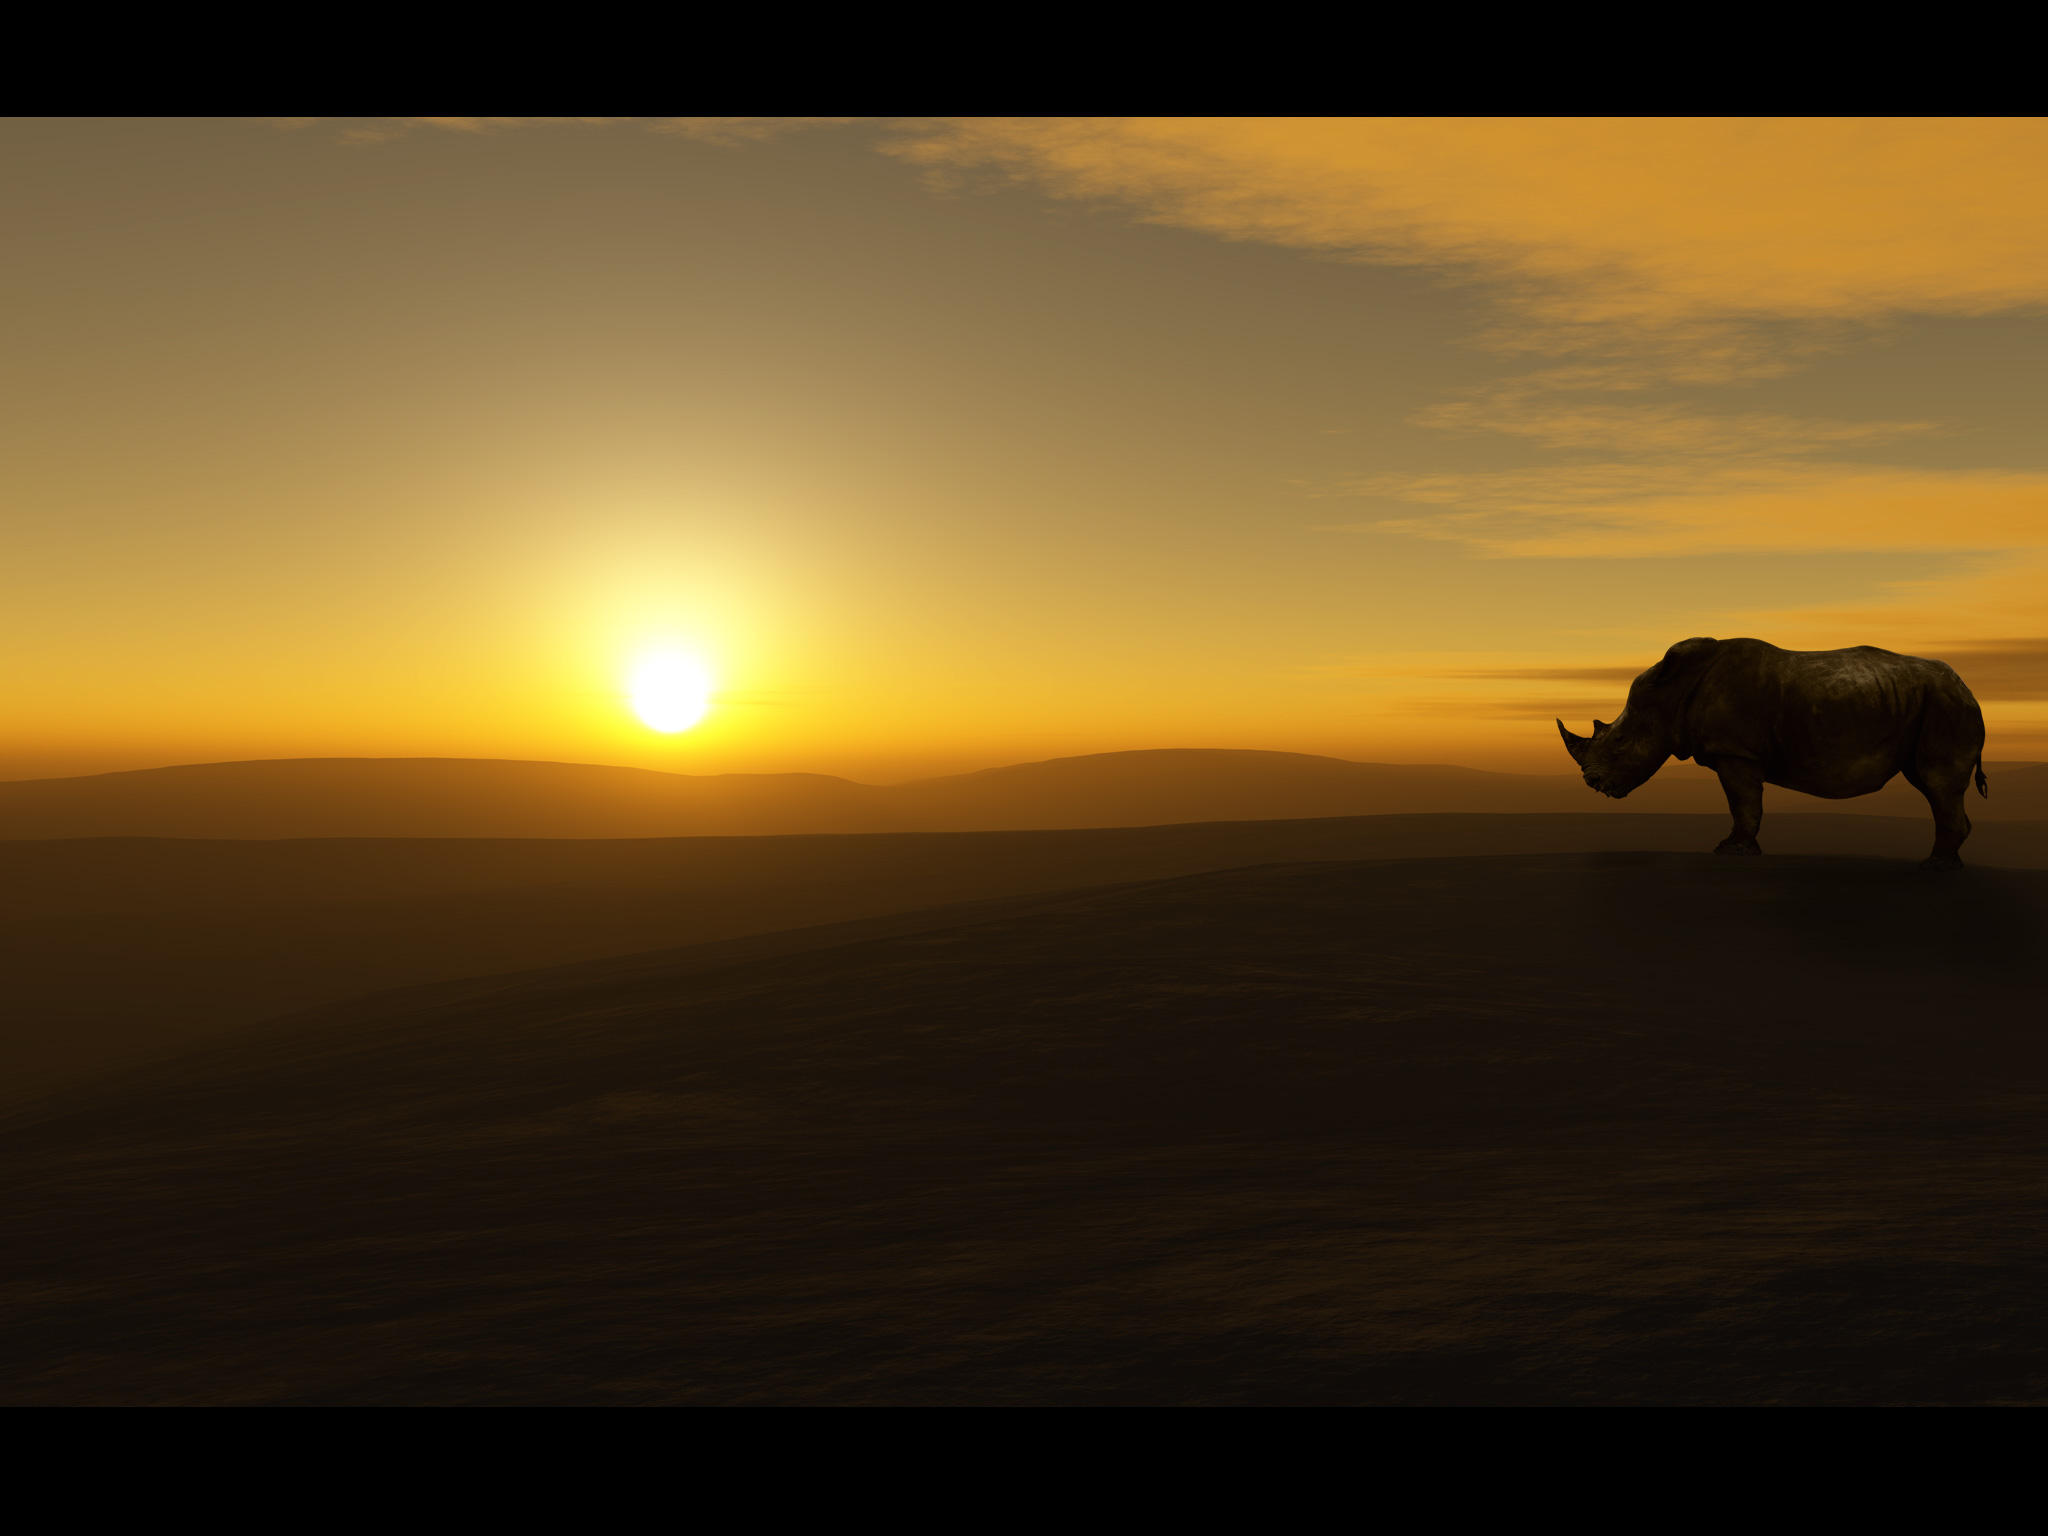 Wallpaper - Rhino View by emailandthings